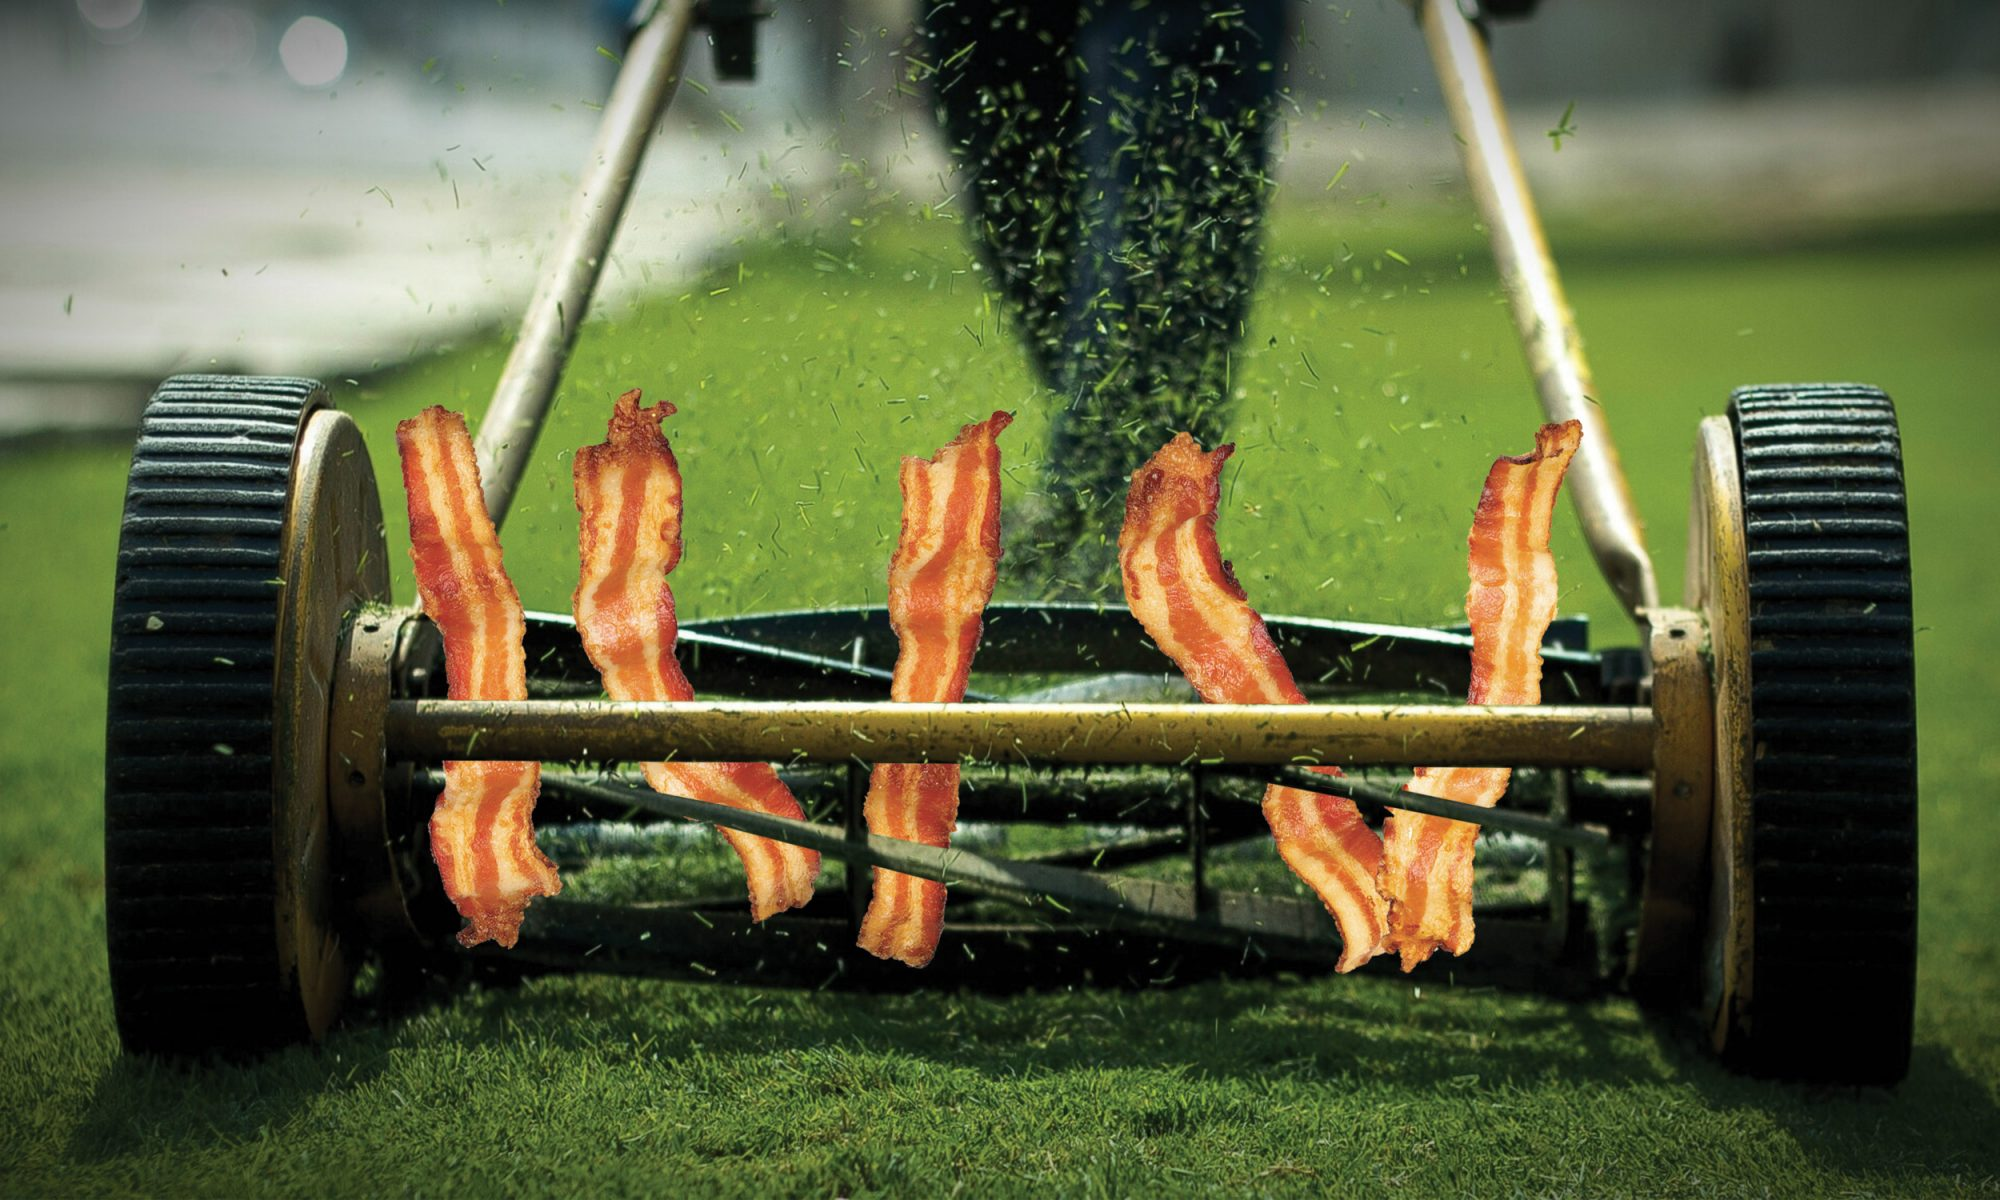 How to Cook Bacon With a Lawnmower